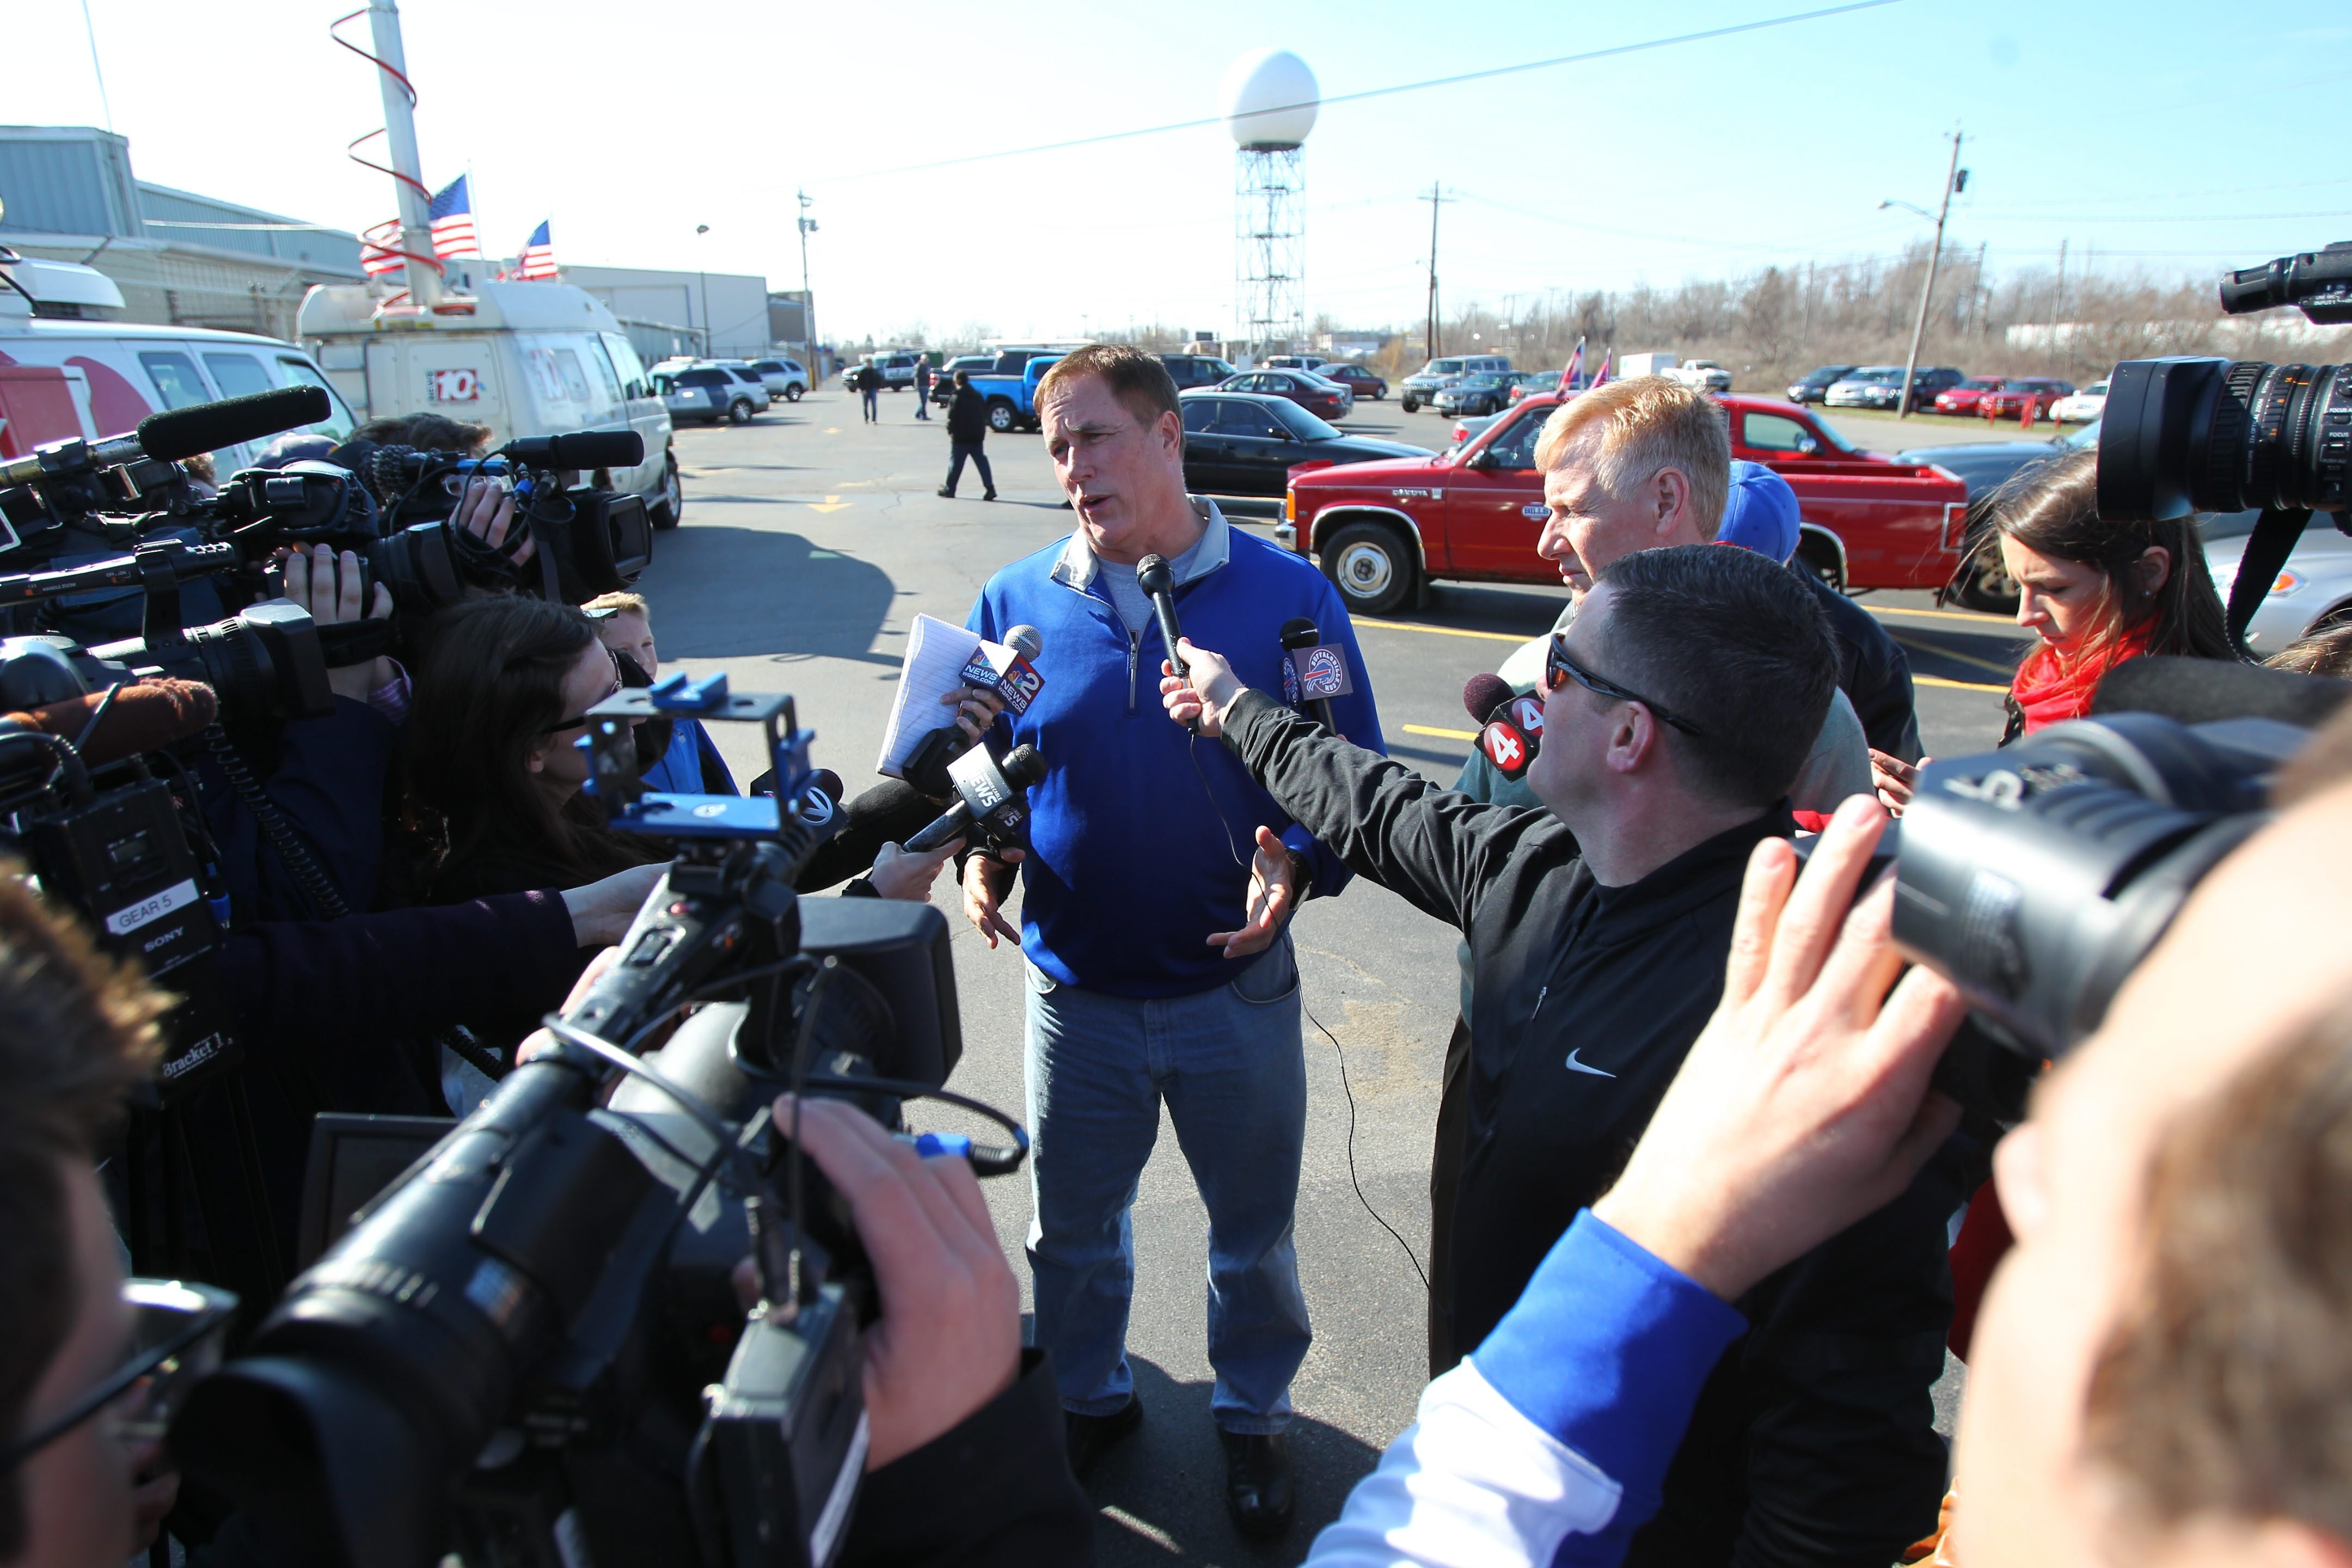 Dan Kelly, Jim Kelly's brother, addresses the media at Prior Aviation where the Hall of Famer was supposed to arrive.